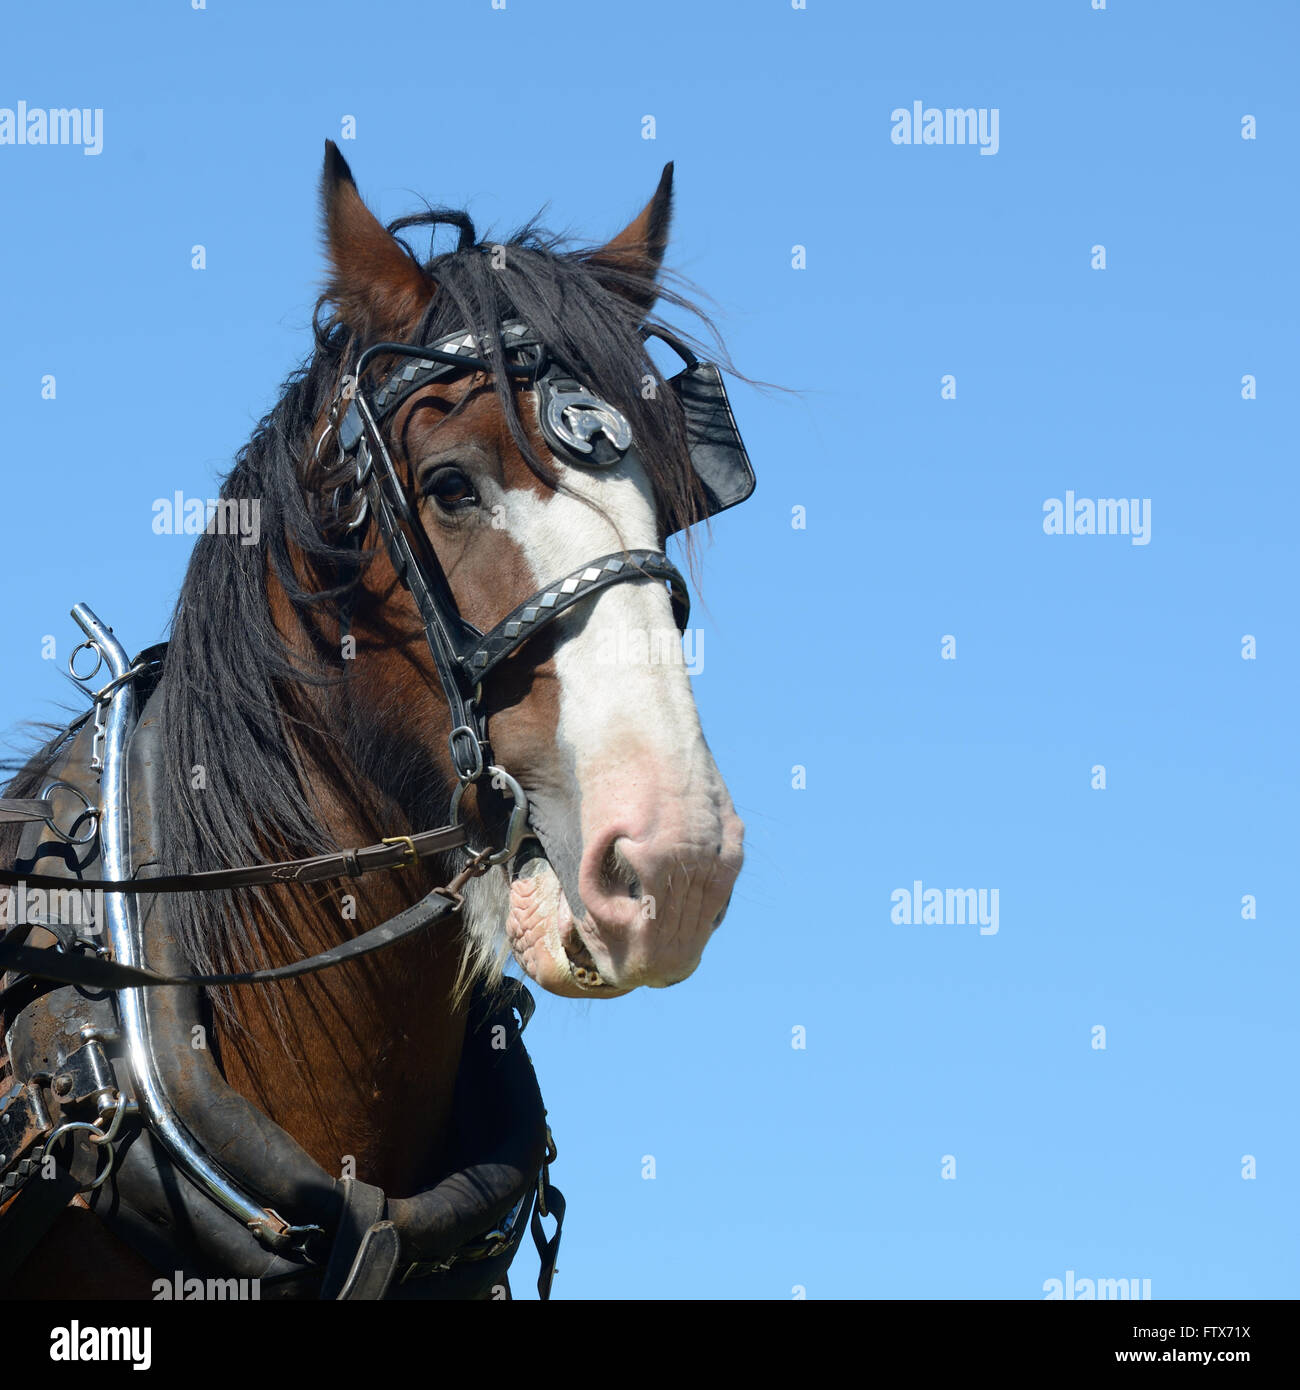 A portrait of a Clydesdale horse harnessed and ready for work - Stock Image